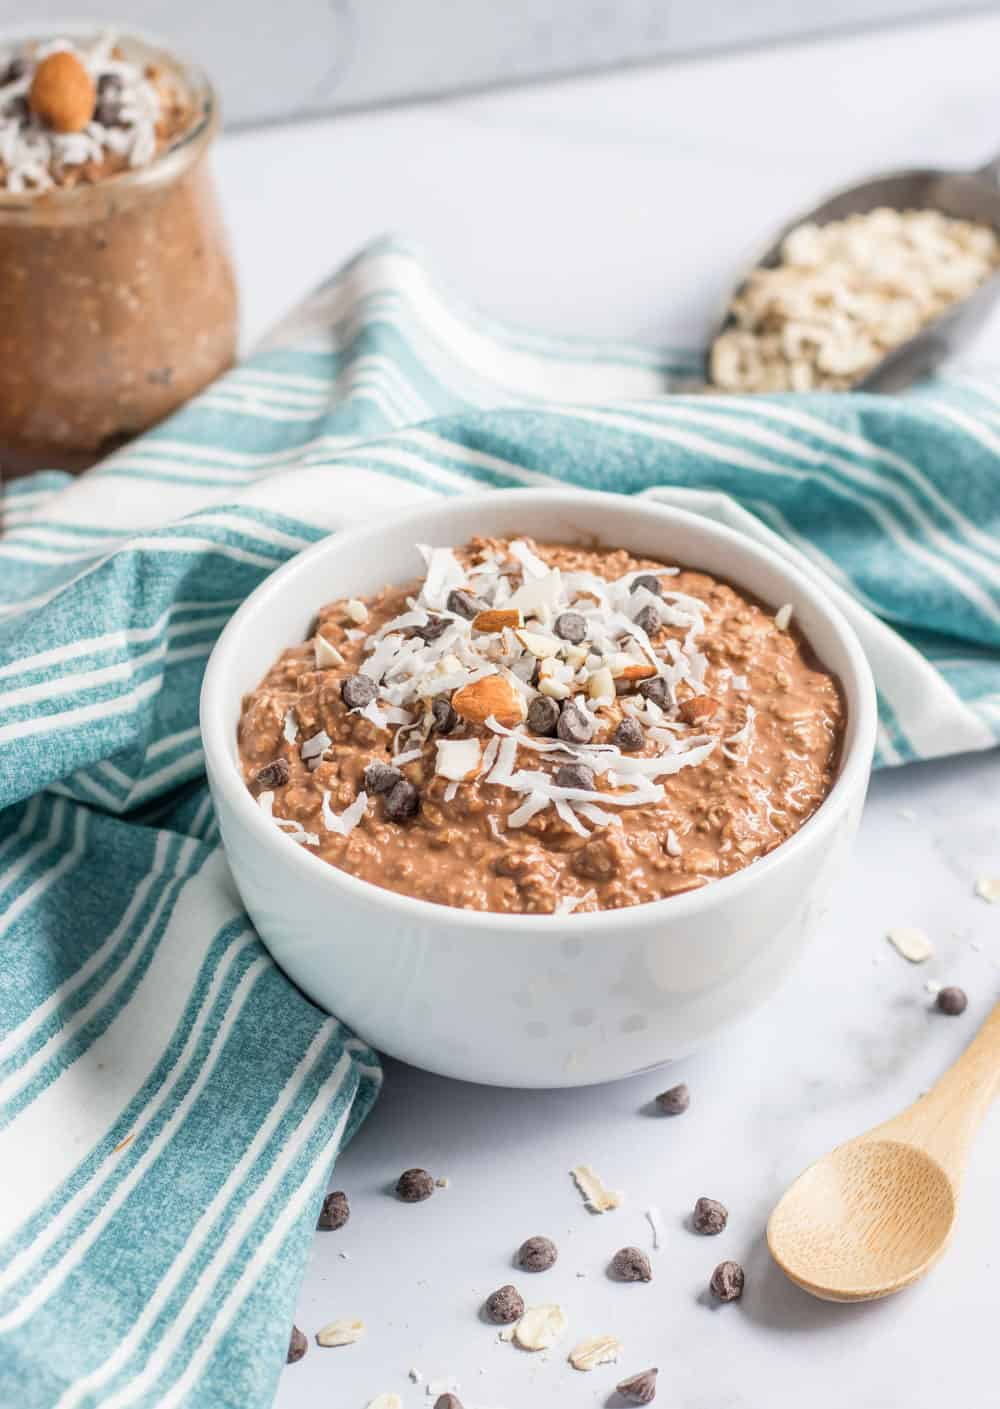 Chocolate overnight oats in white bowl with chocolate chips and coconut.